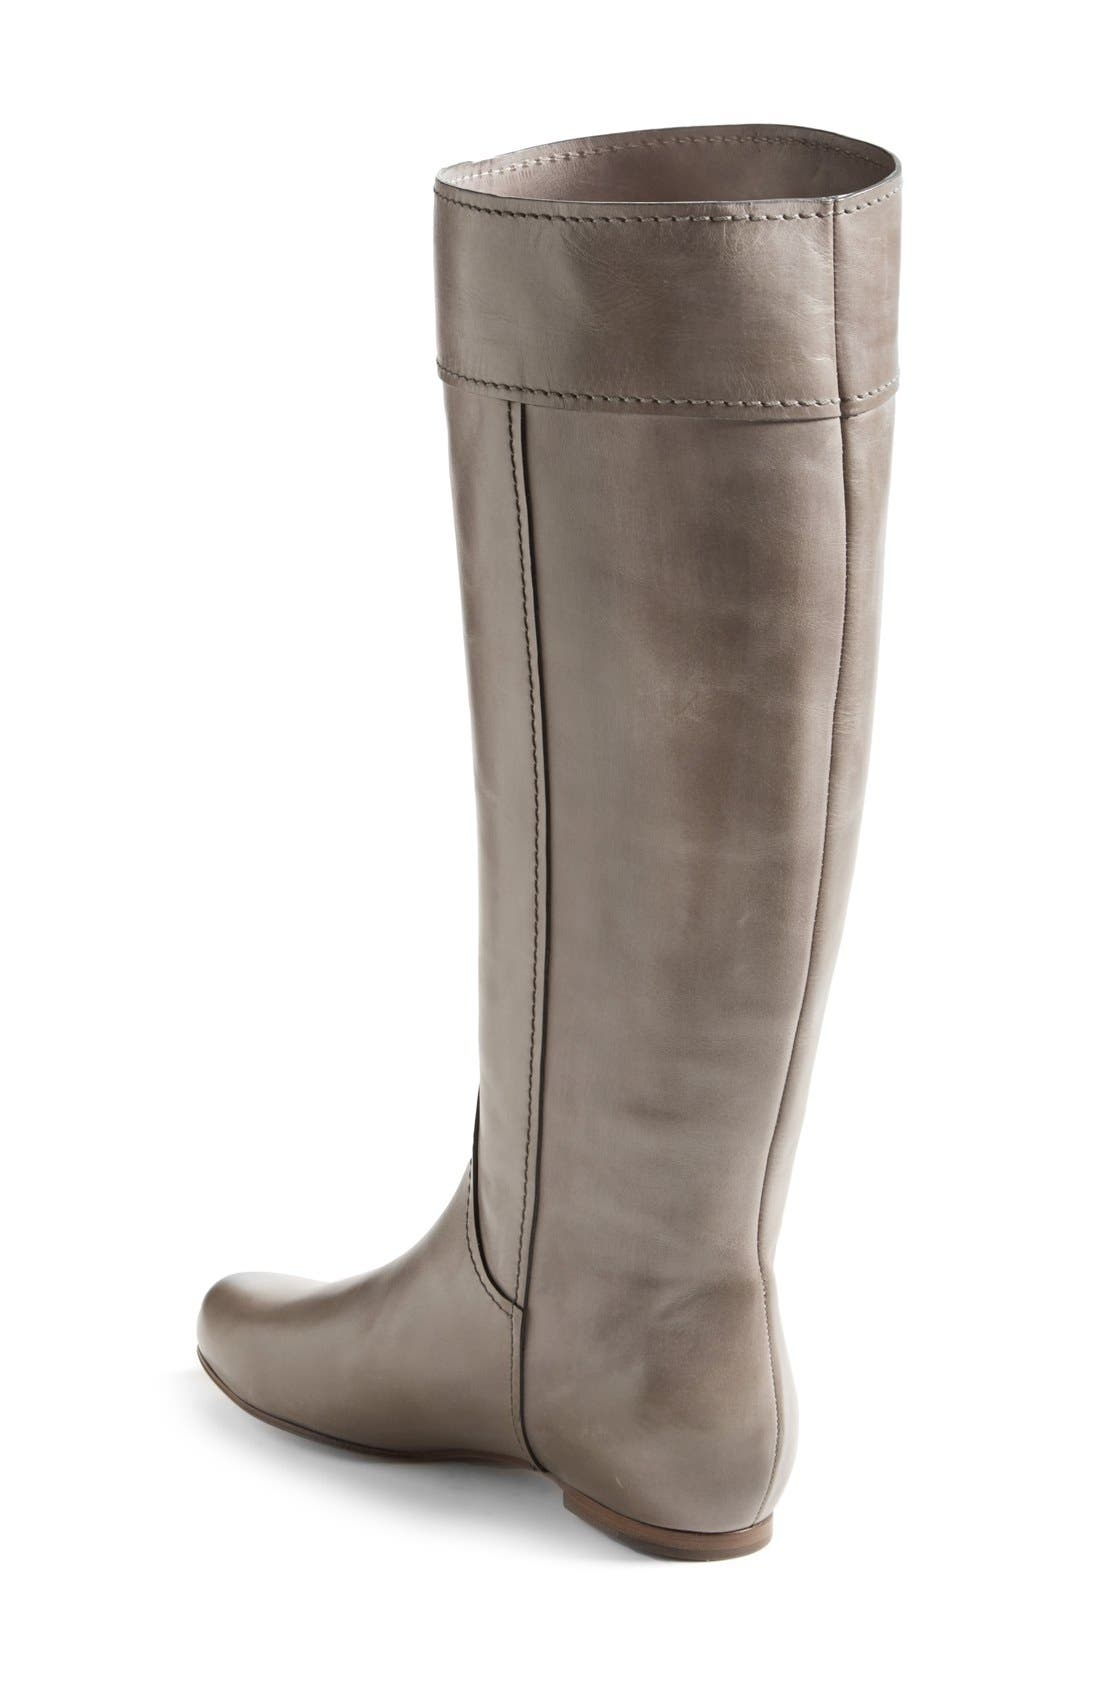 'Heloise' Tall Calfskin Leather Boot,                             Alternate thumbnail 4, color,                             020